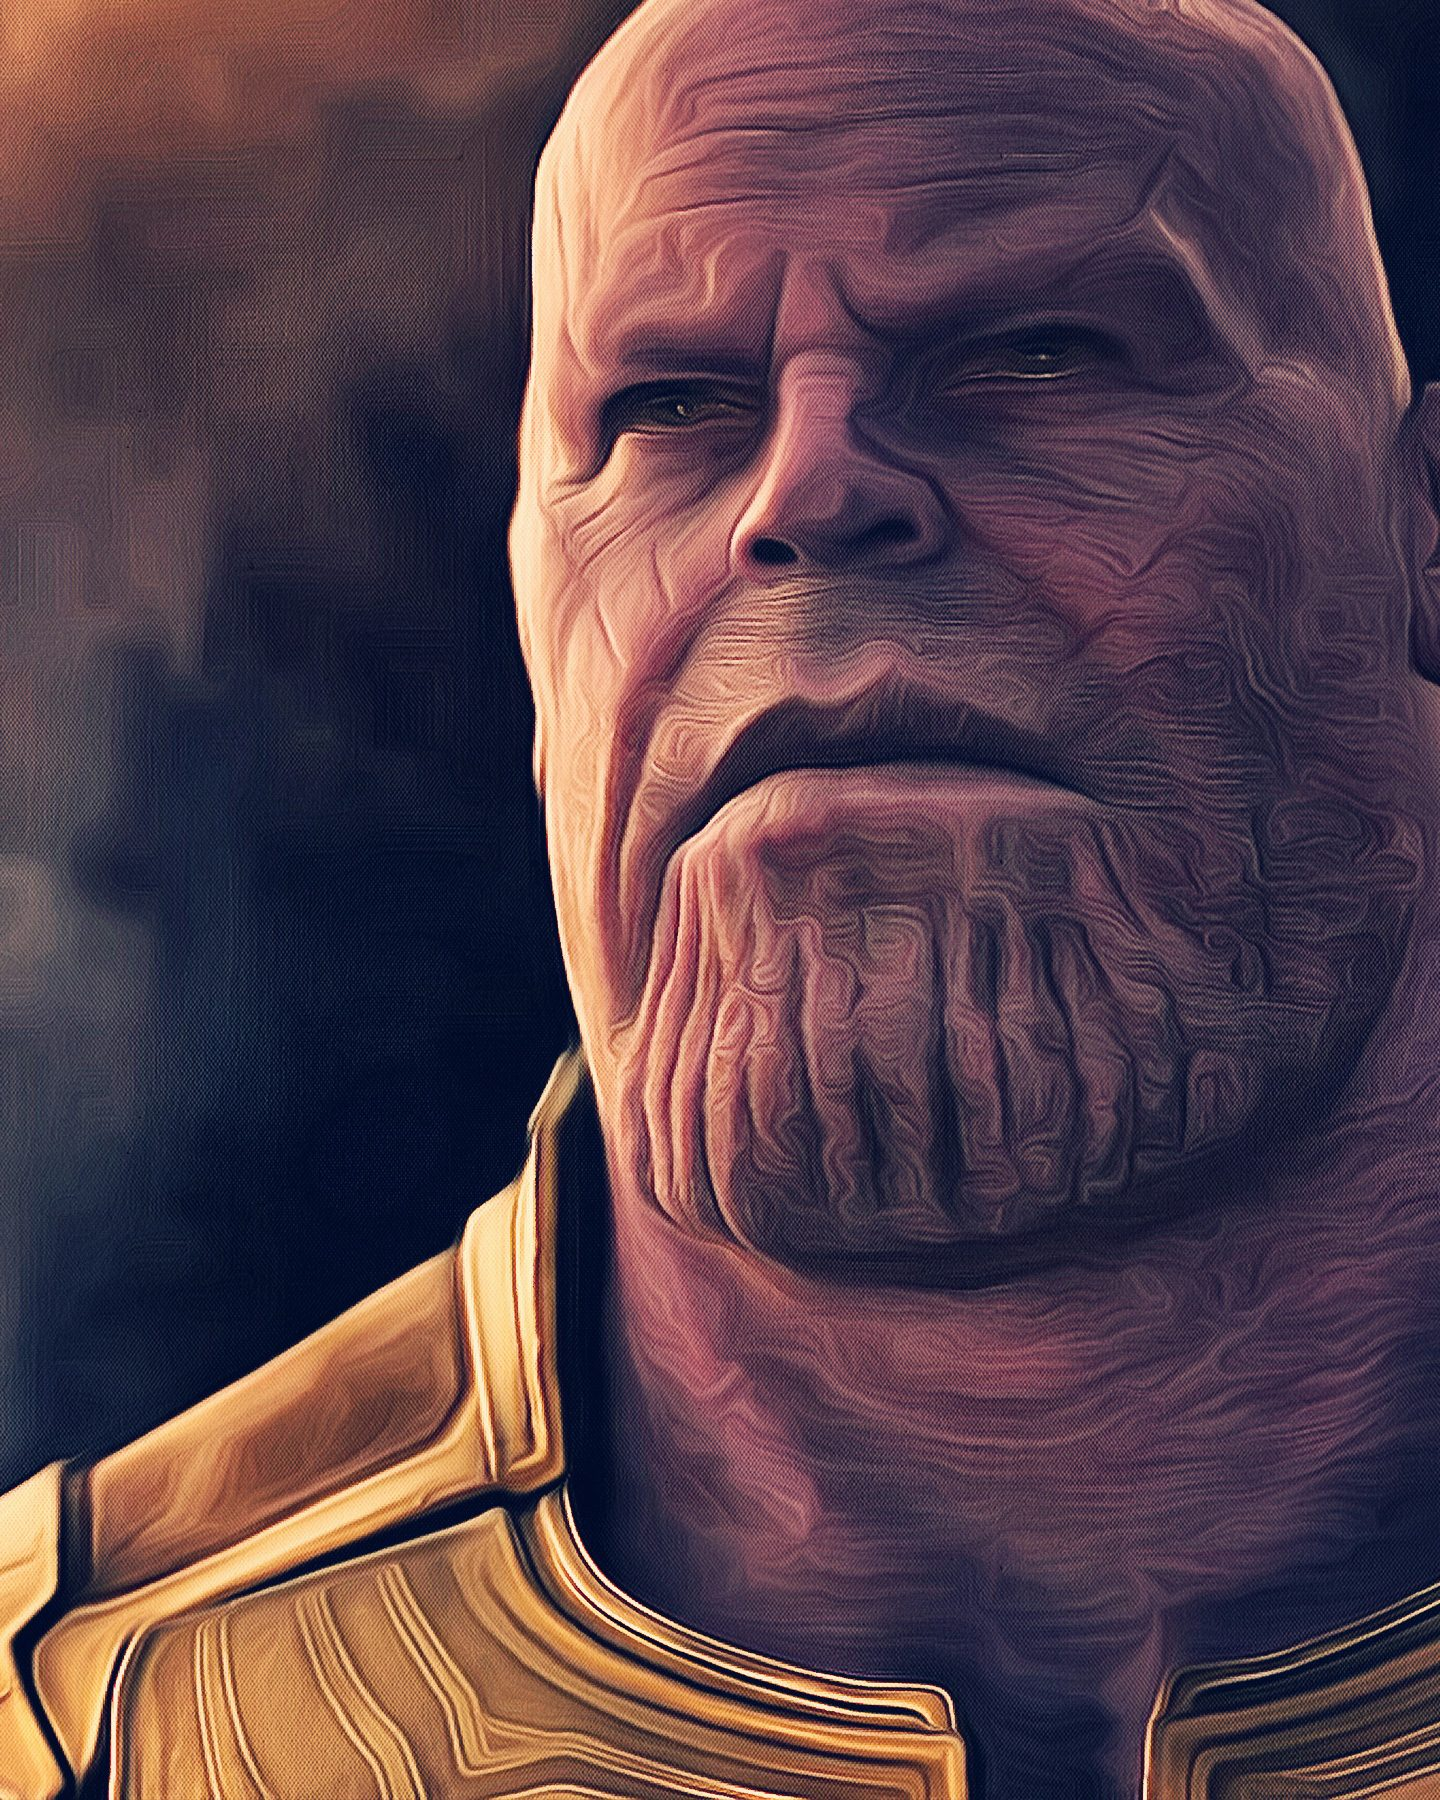 Thanos Avengers Infinity War Artwork 4k Wallpaper Best Wallpapers